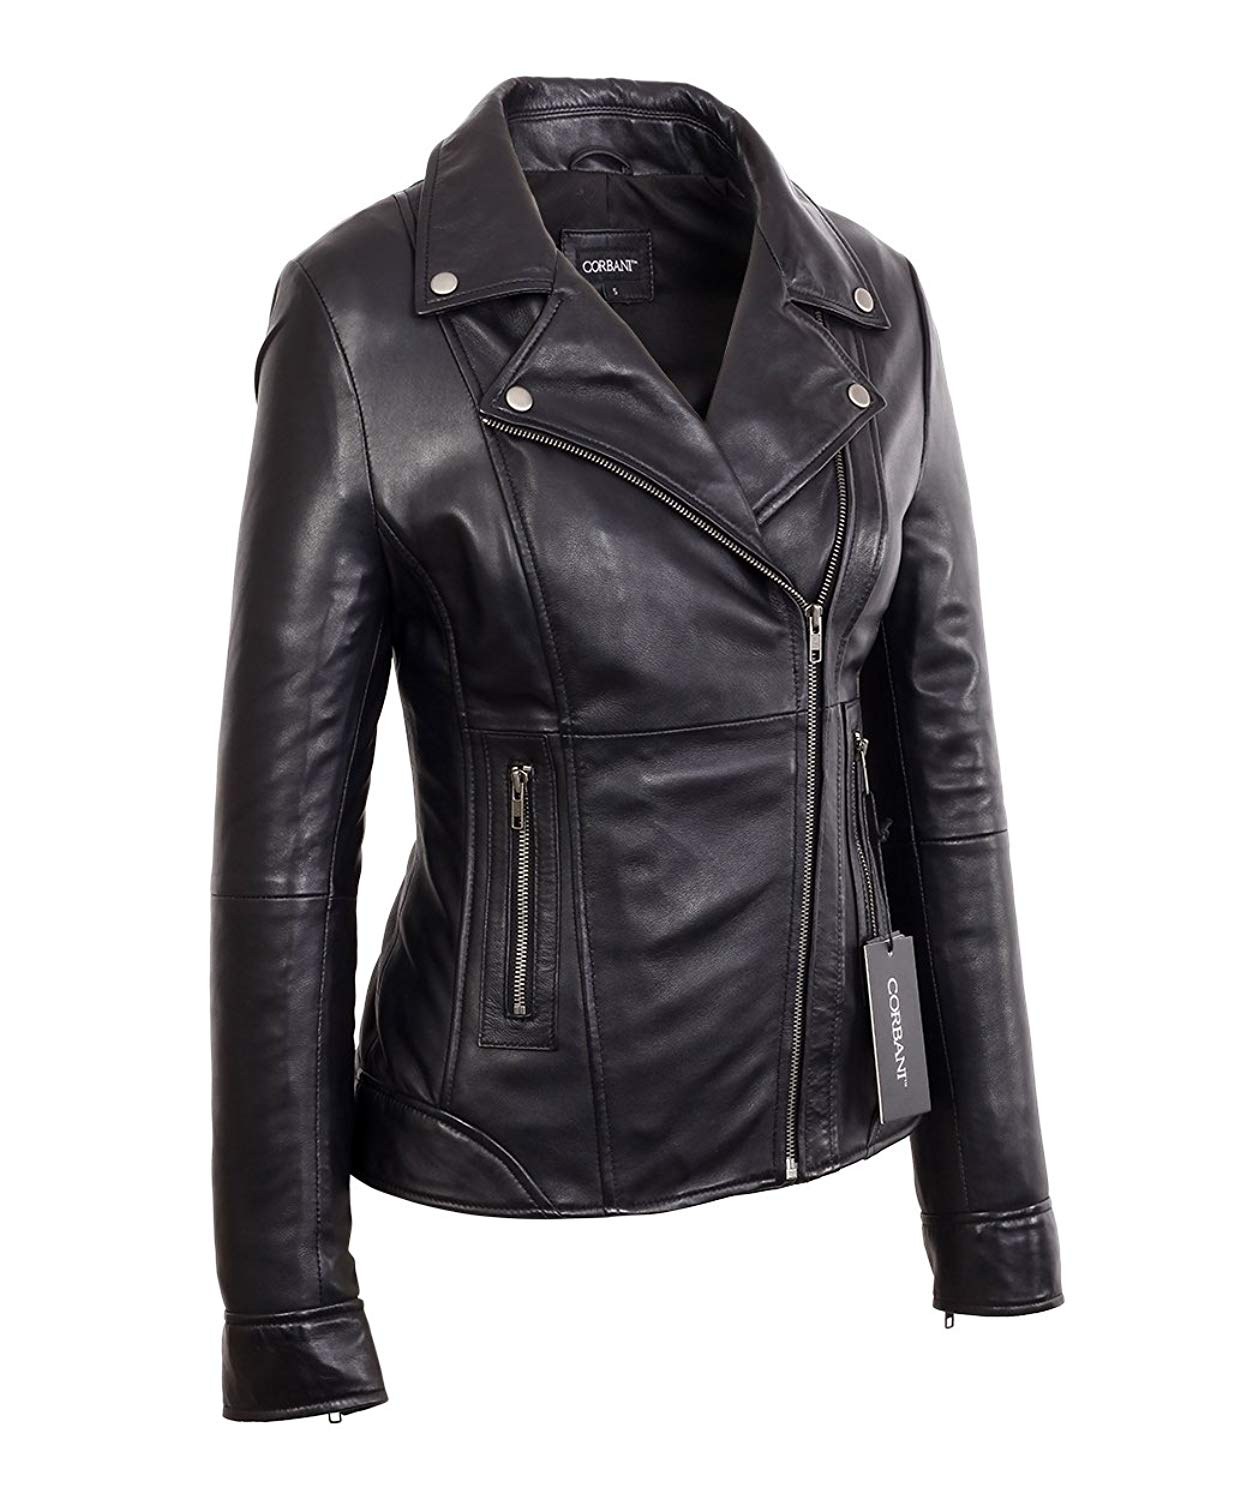 6be53a1b7f2 Cheap 3 4 Length Leather Jacket, find 3 4 Length Leather Jacket ...